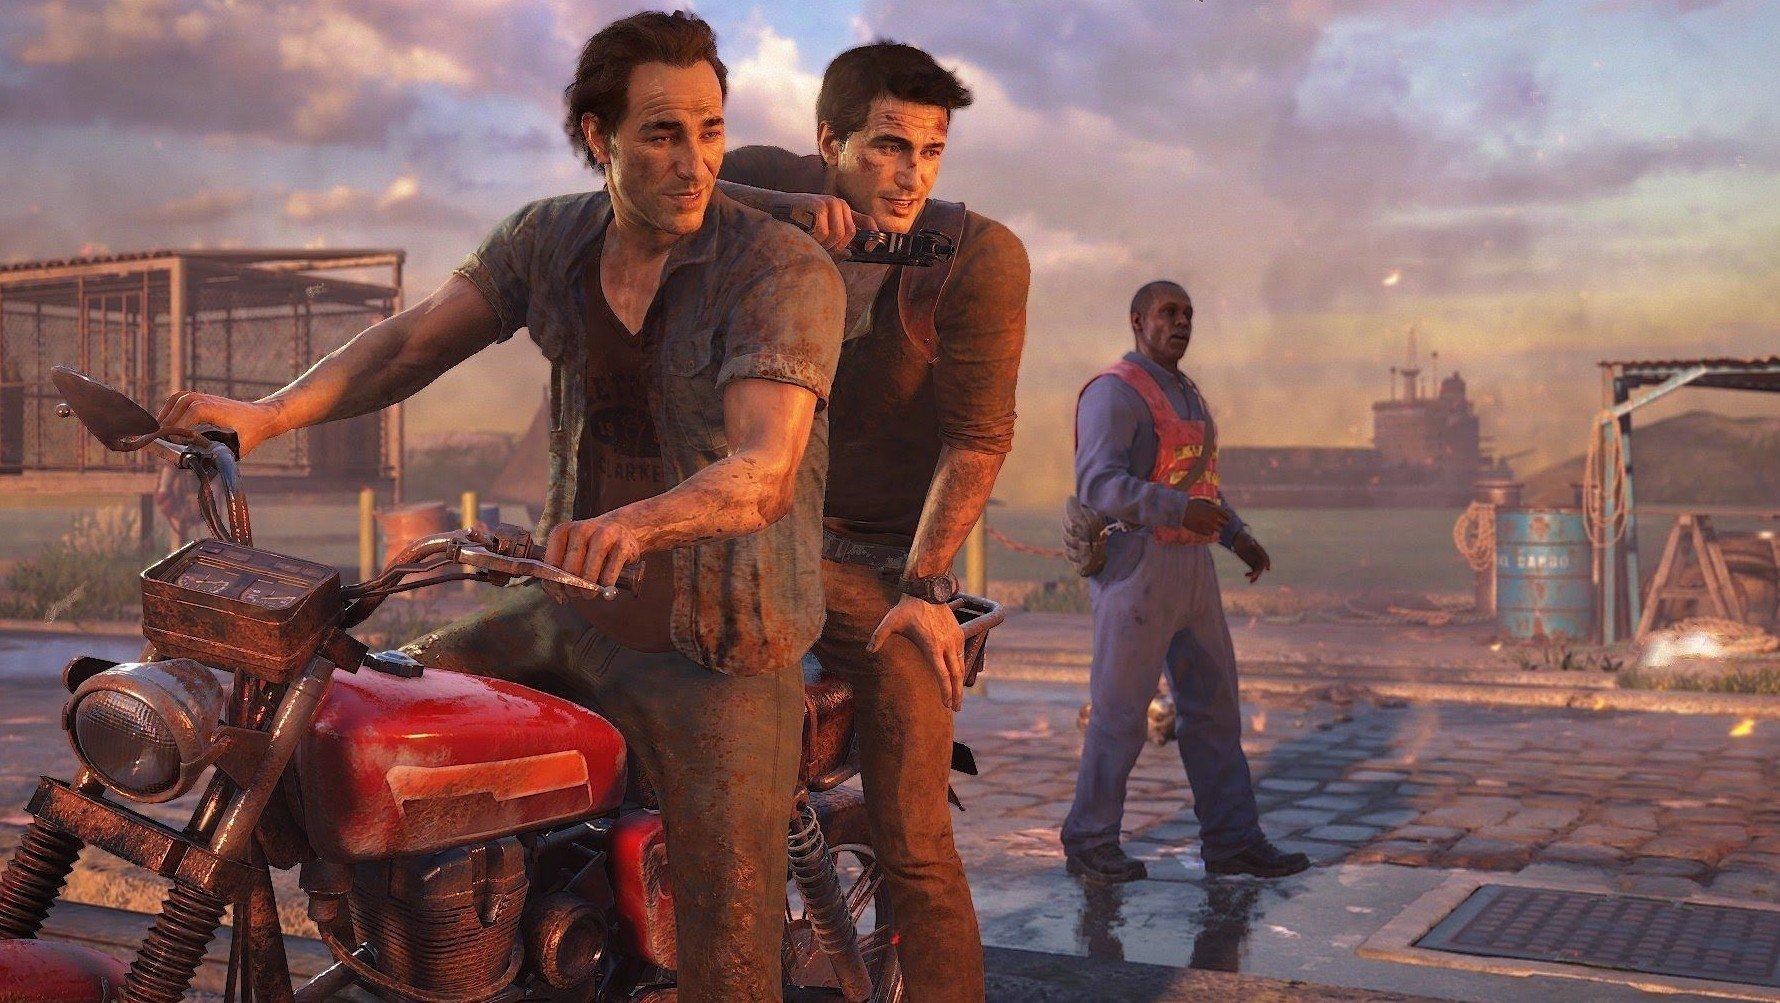 uncharted-4-does-the-uncharted-collection-come-with-beta-access-uncharted-4-538296-e1441299300639